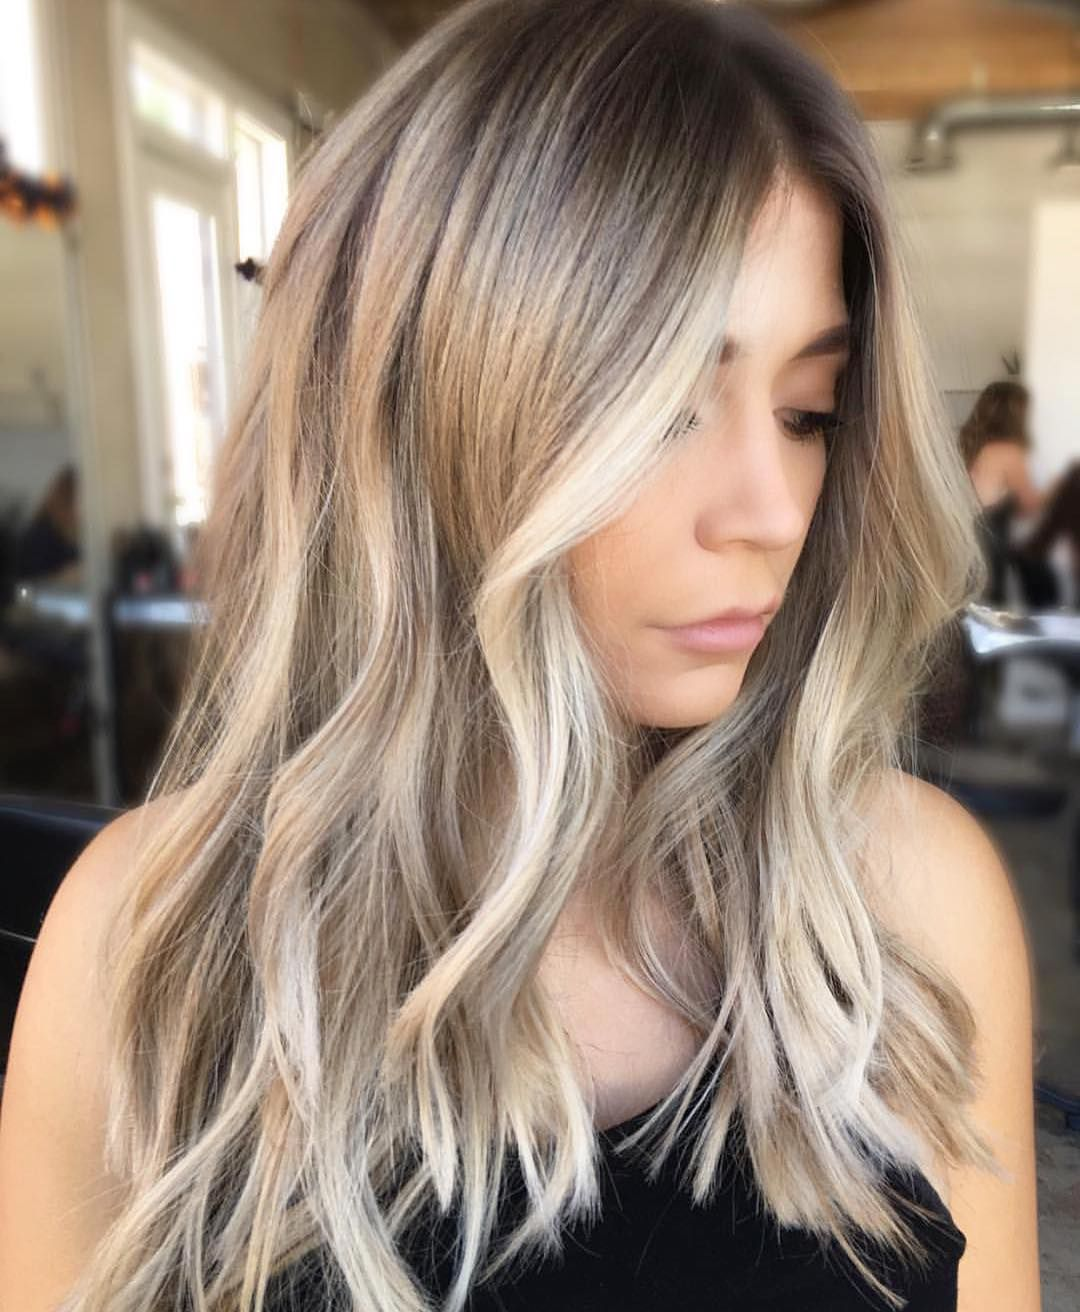 Hair Color Ombr What Do Ya Say In 2018 Pinterest